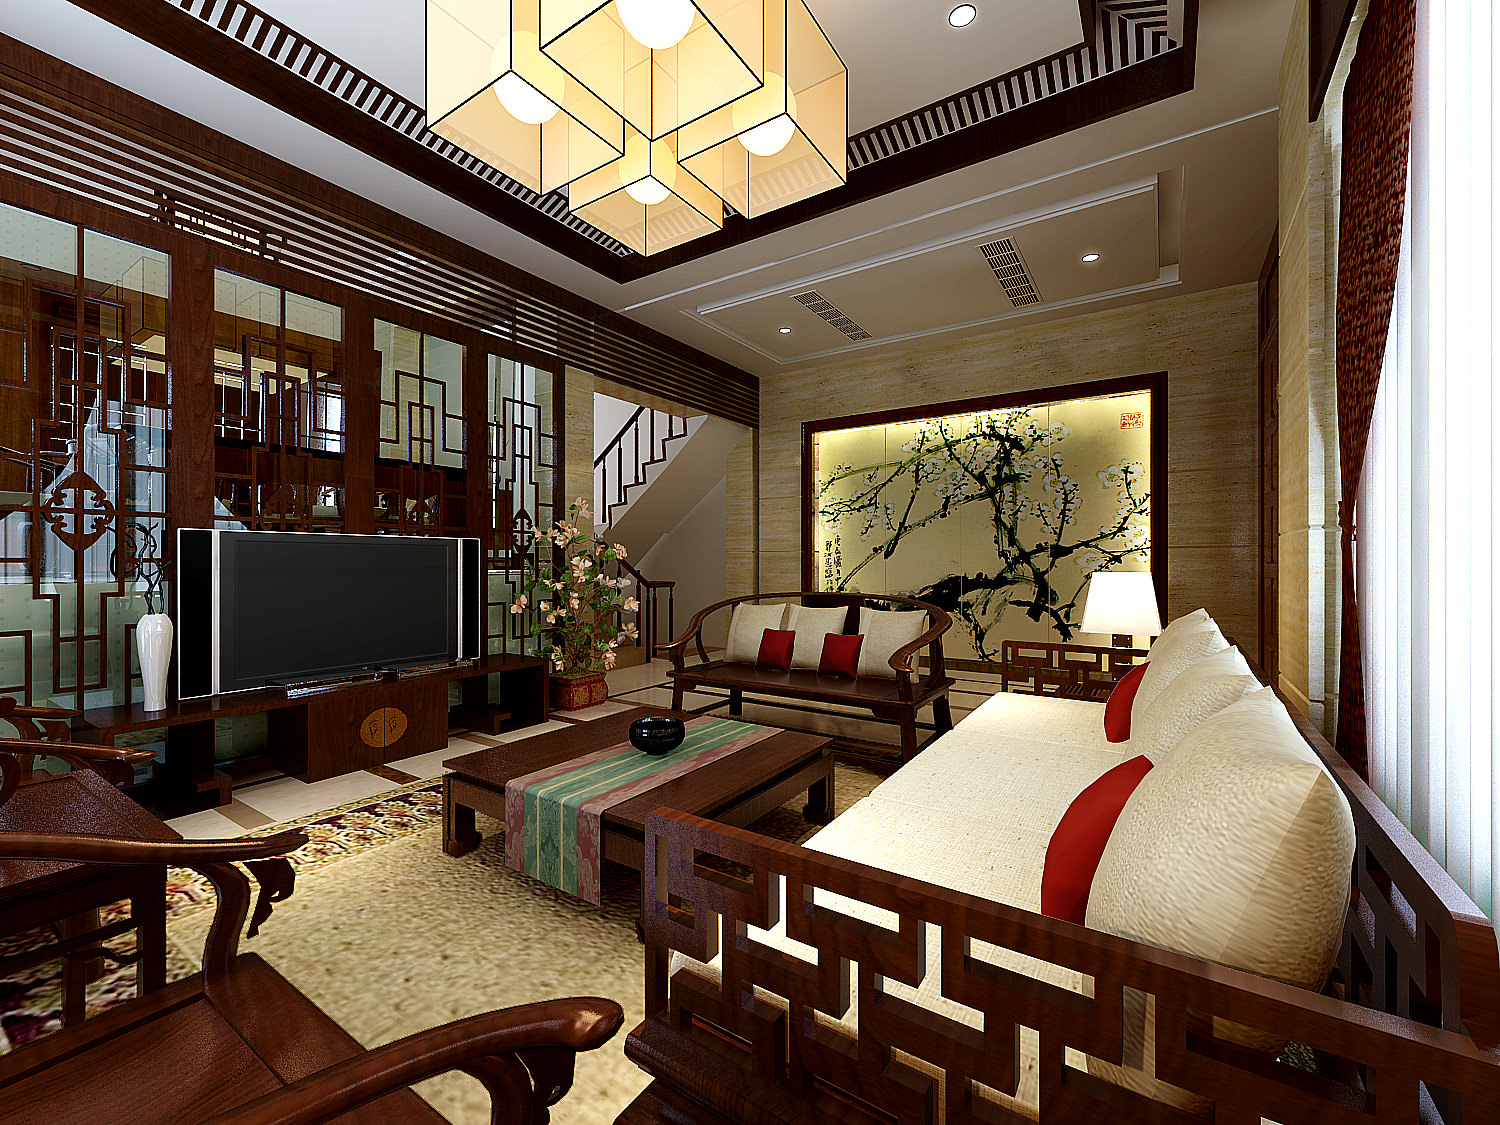 Modern Living Room With Dining Upstairs 3d Model Max 2